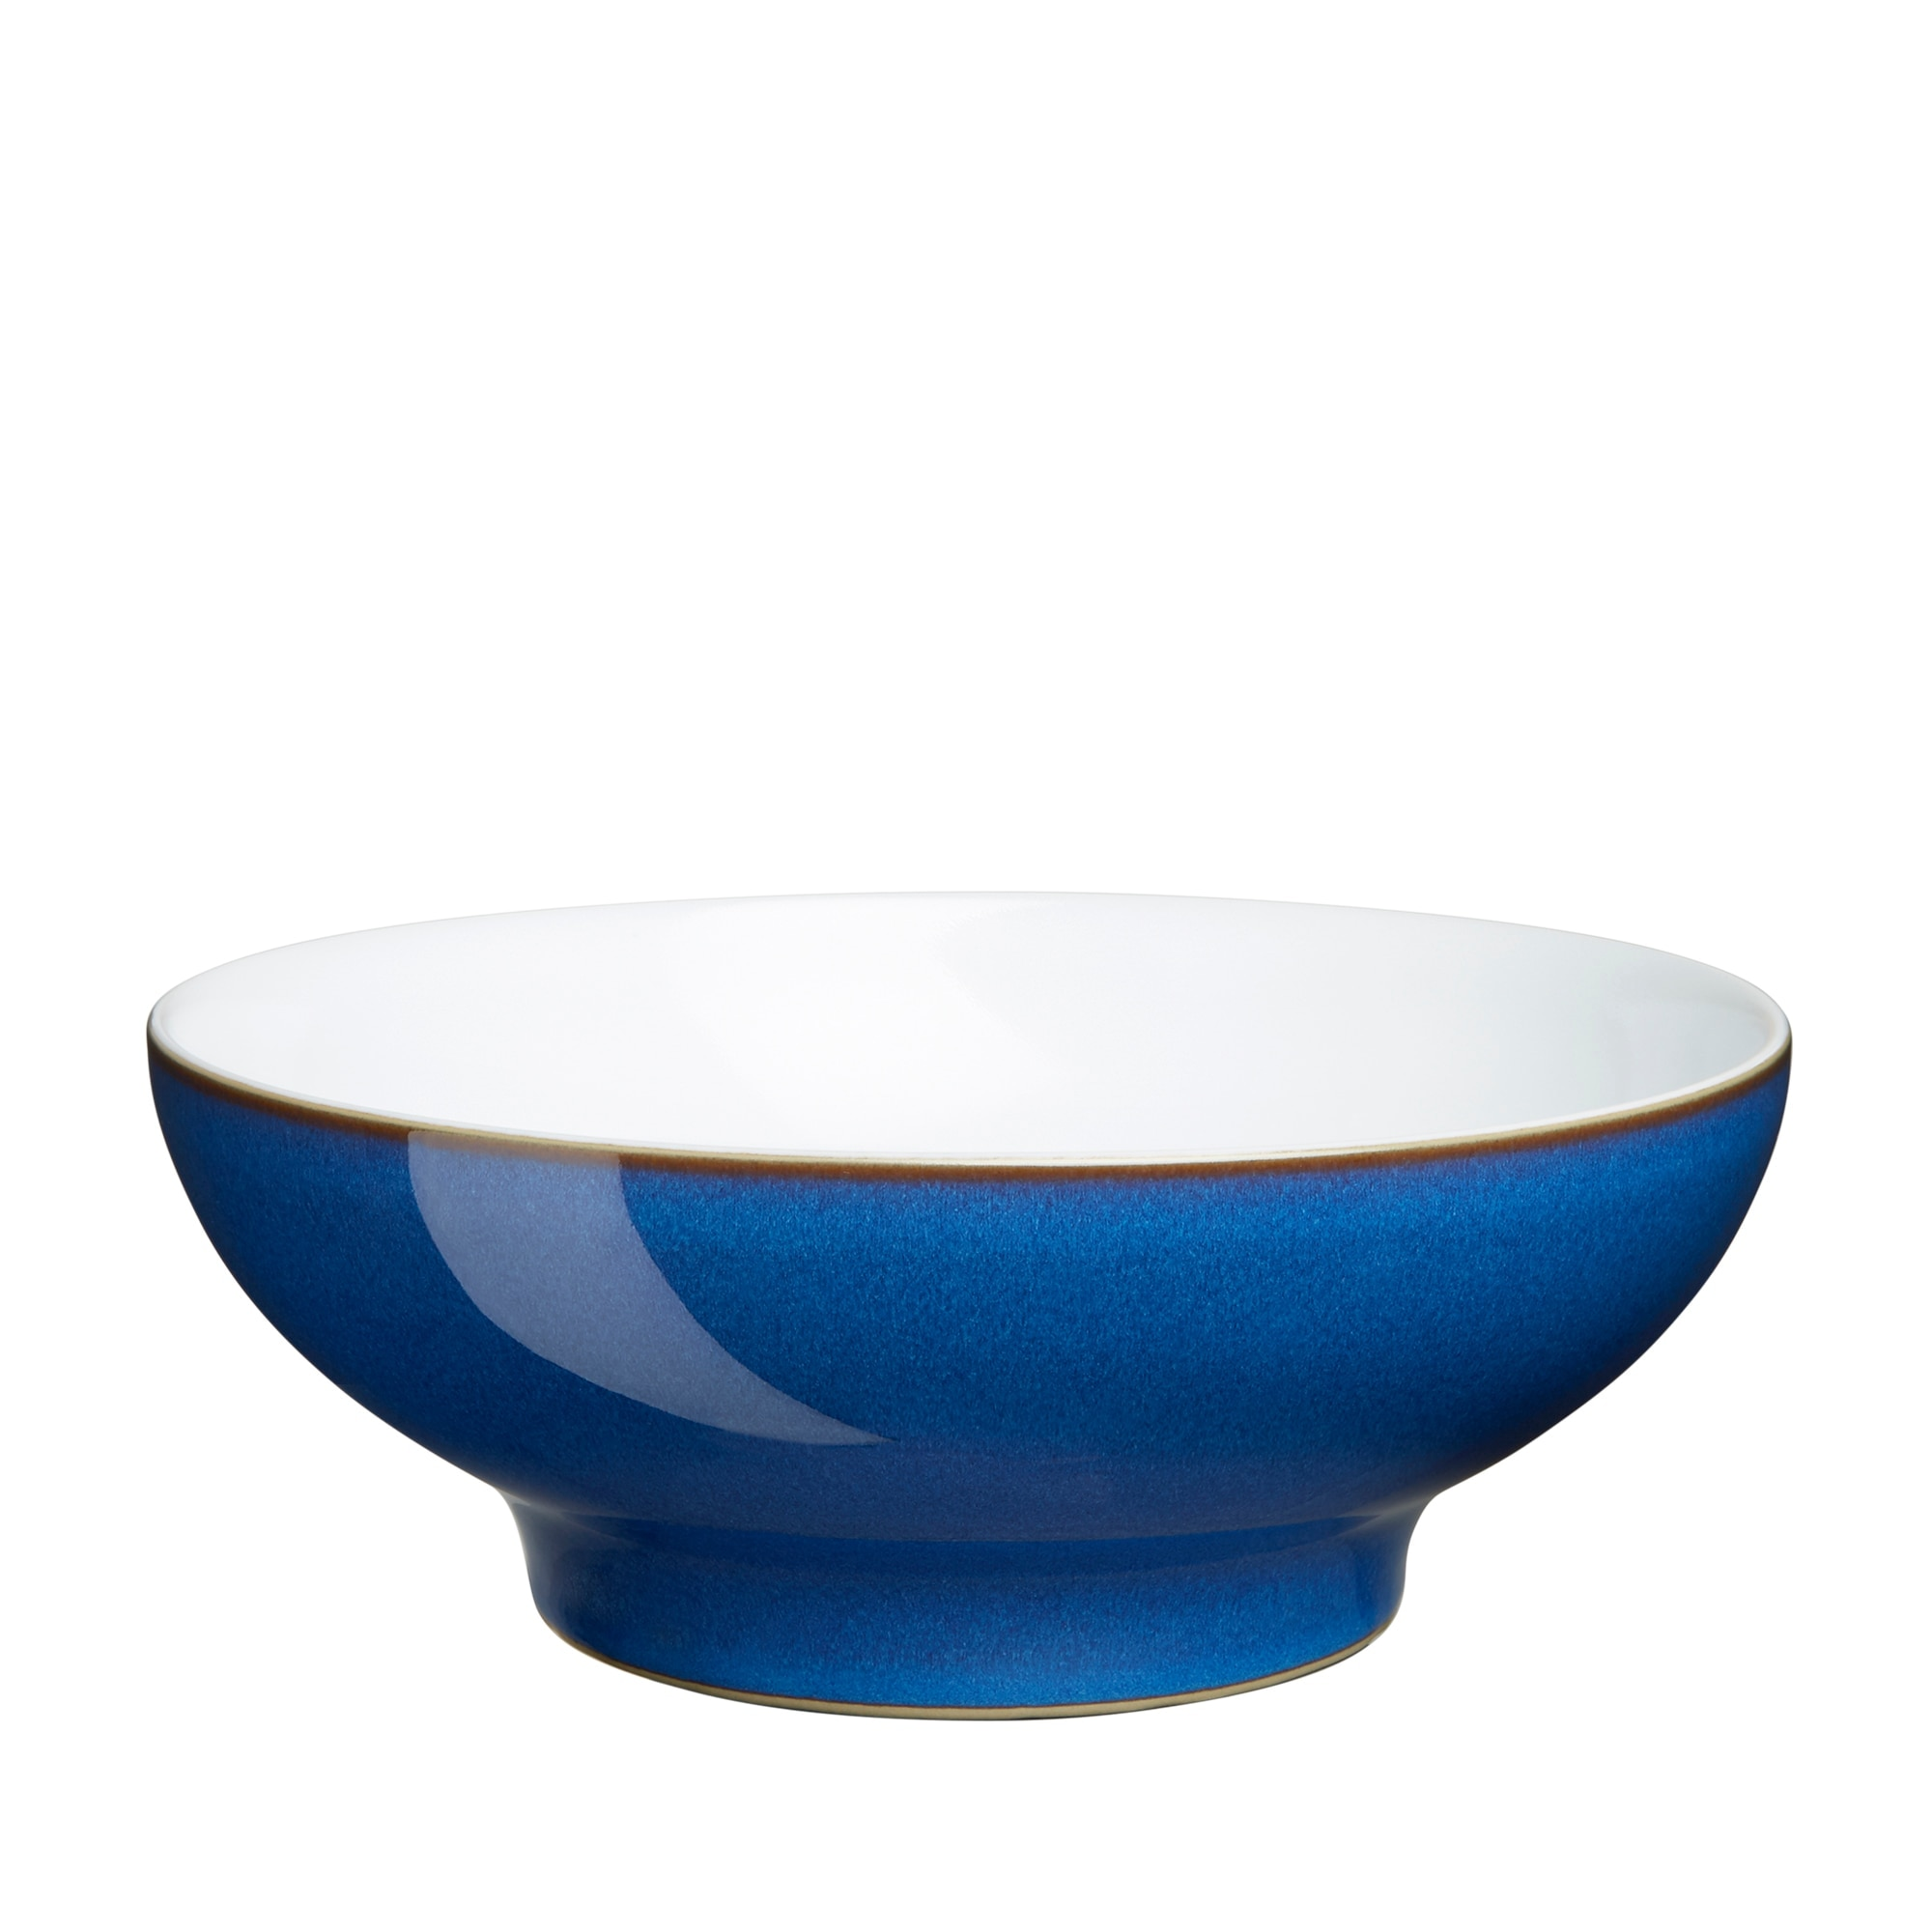 Crockery Imperial Blue Medium Serving Bowl